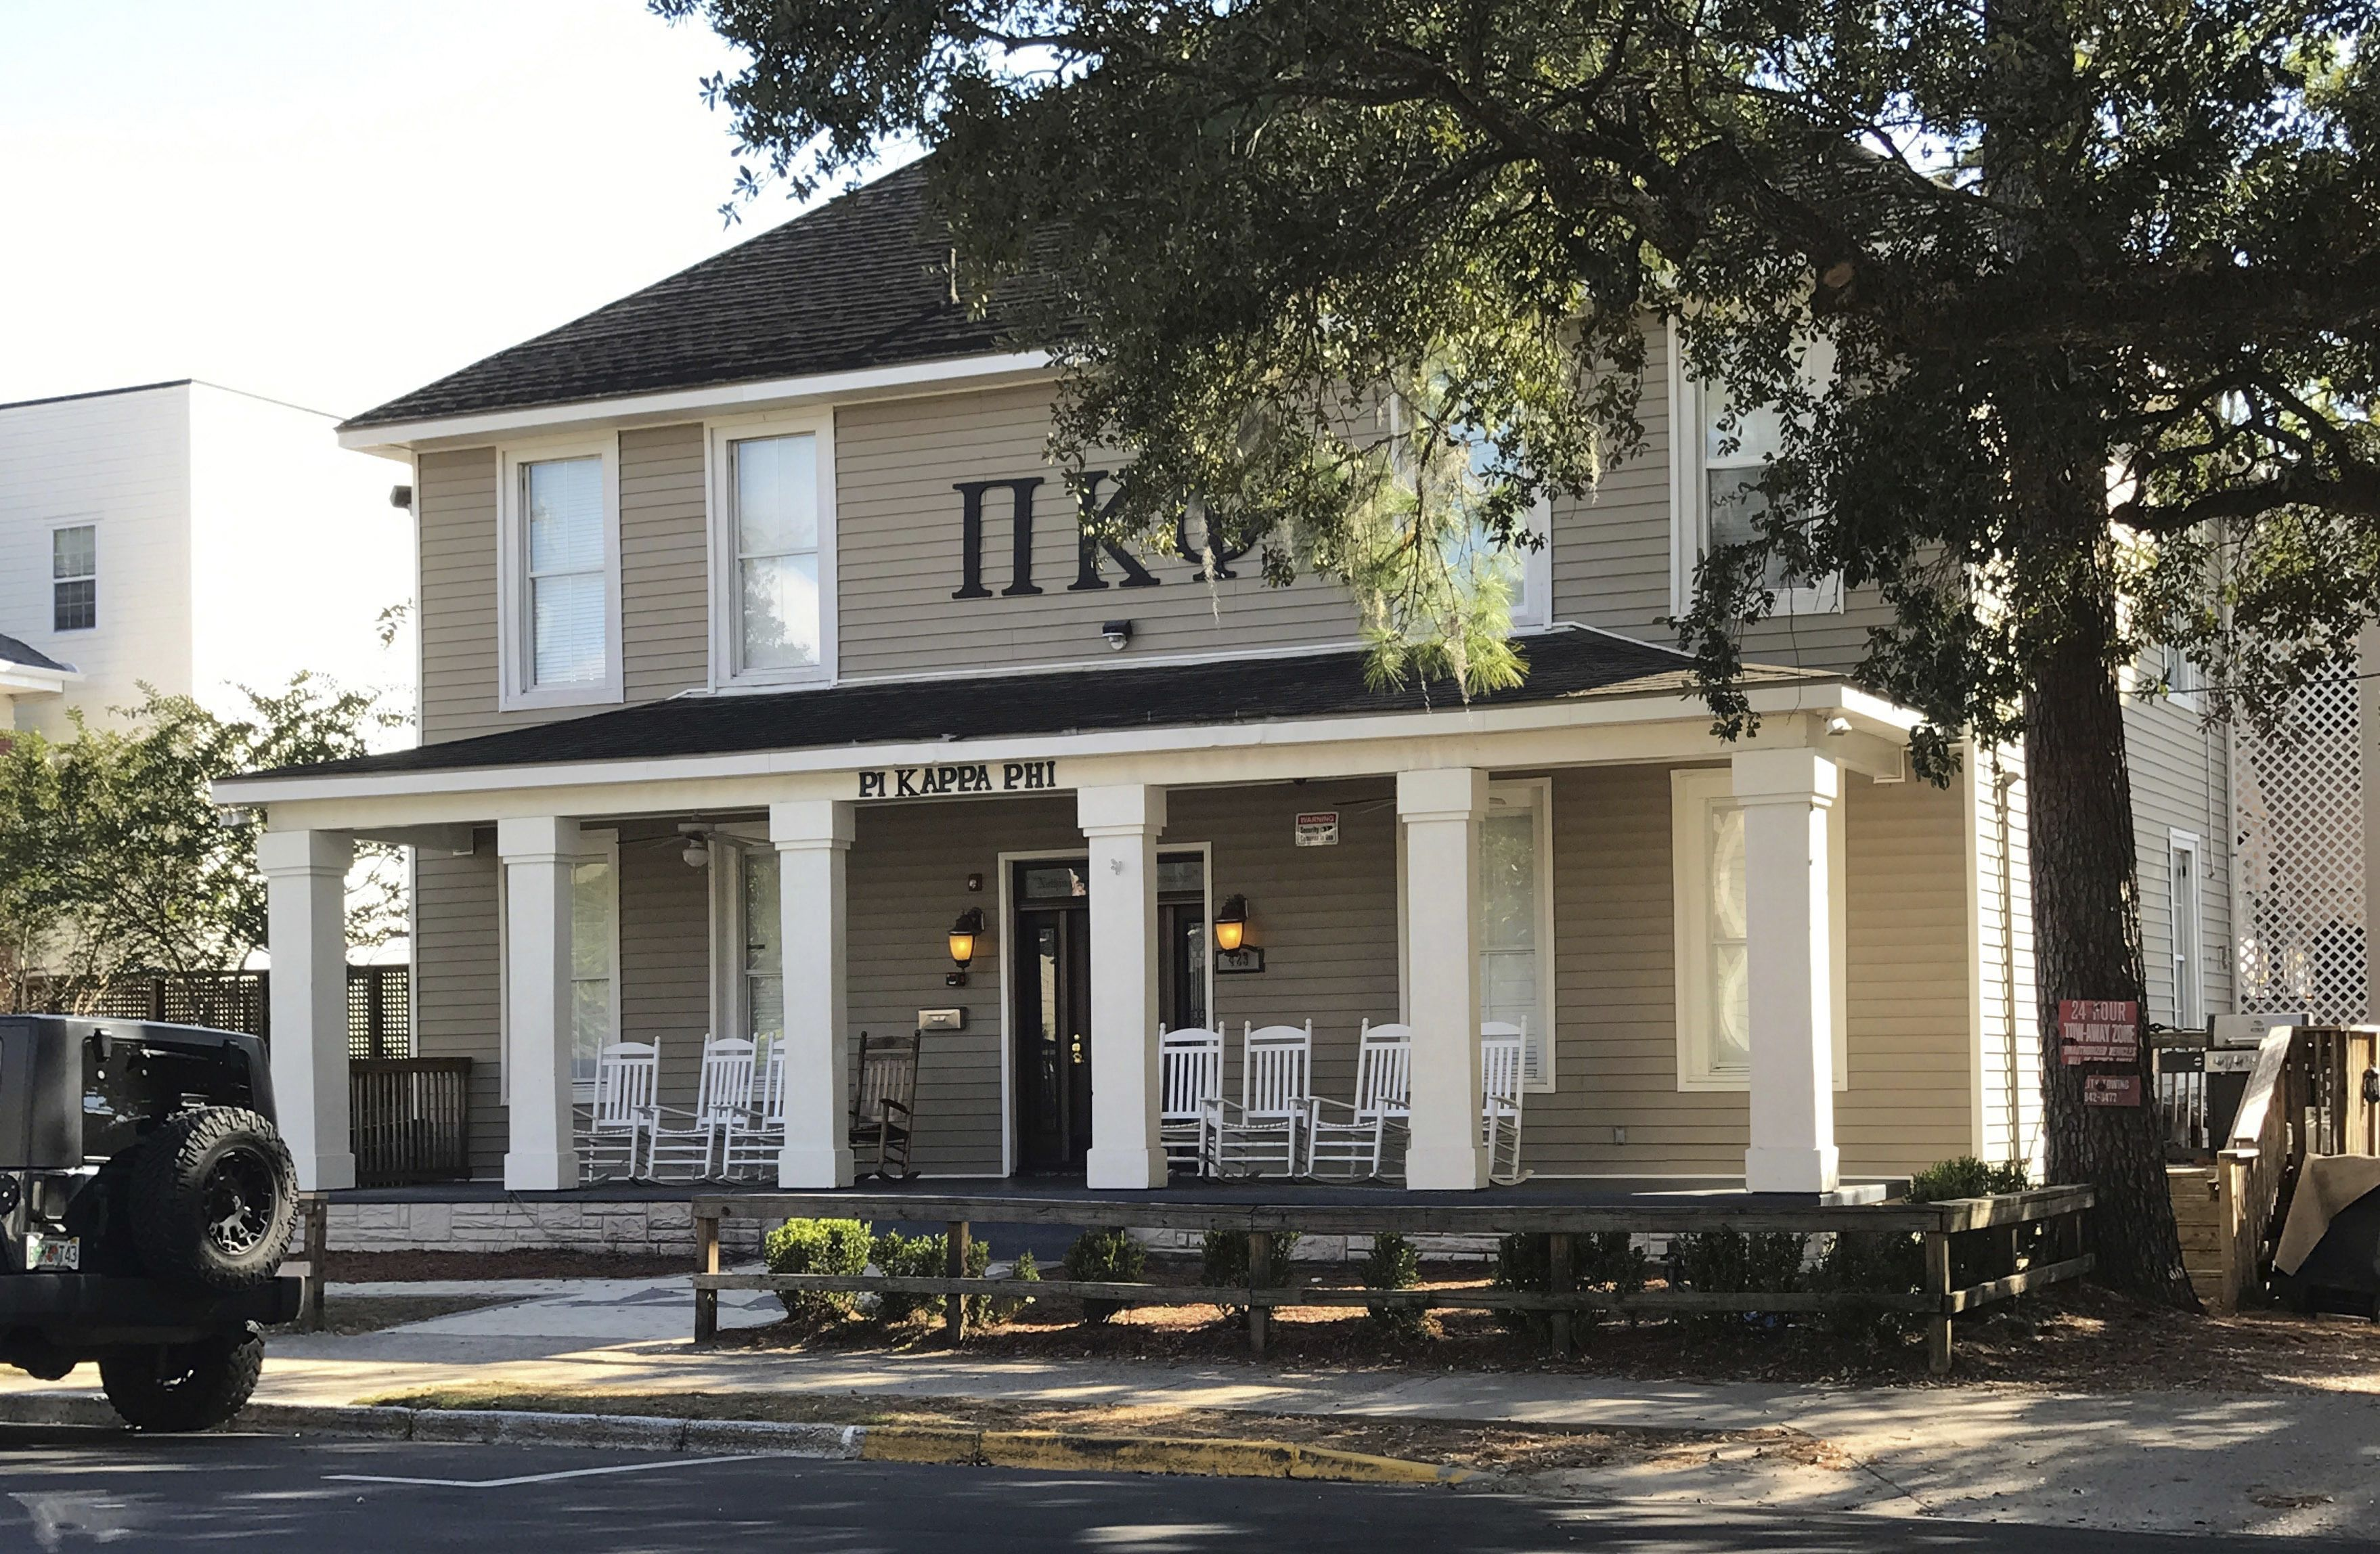 The Pi Kappa Phi fraternity house is seen near Florida State University in Tallahassee, Fla., on Nov. 7, 2017.